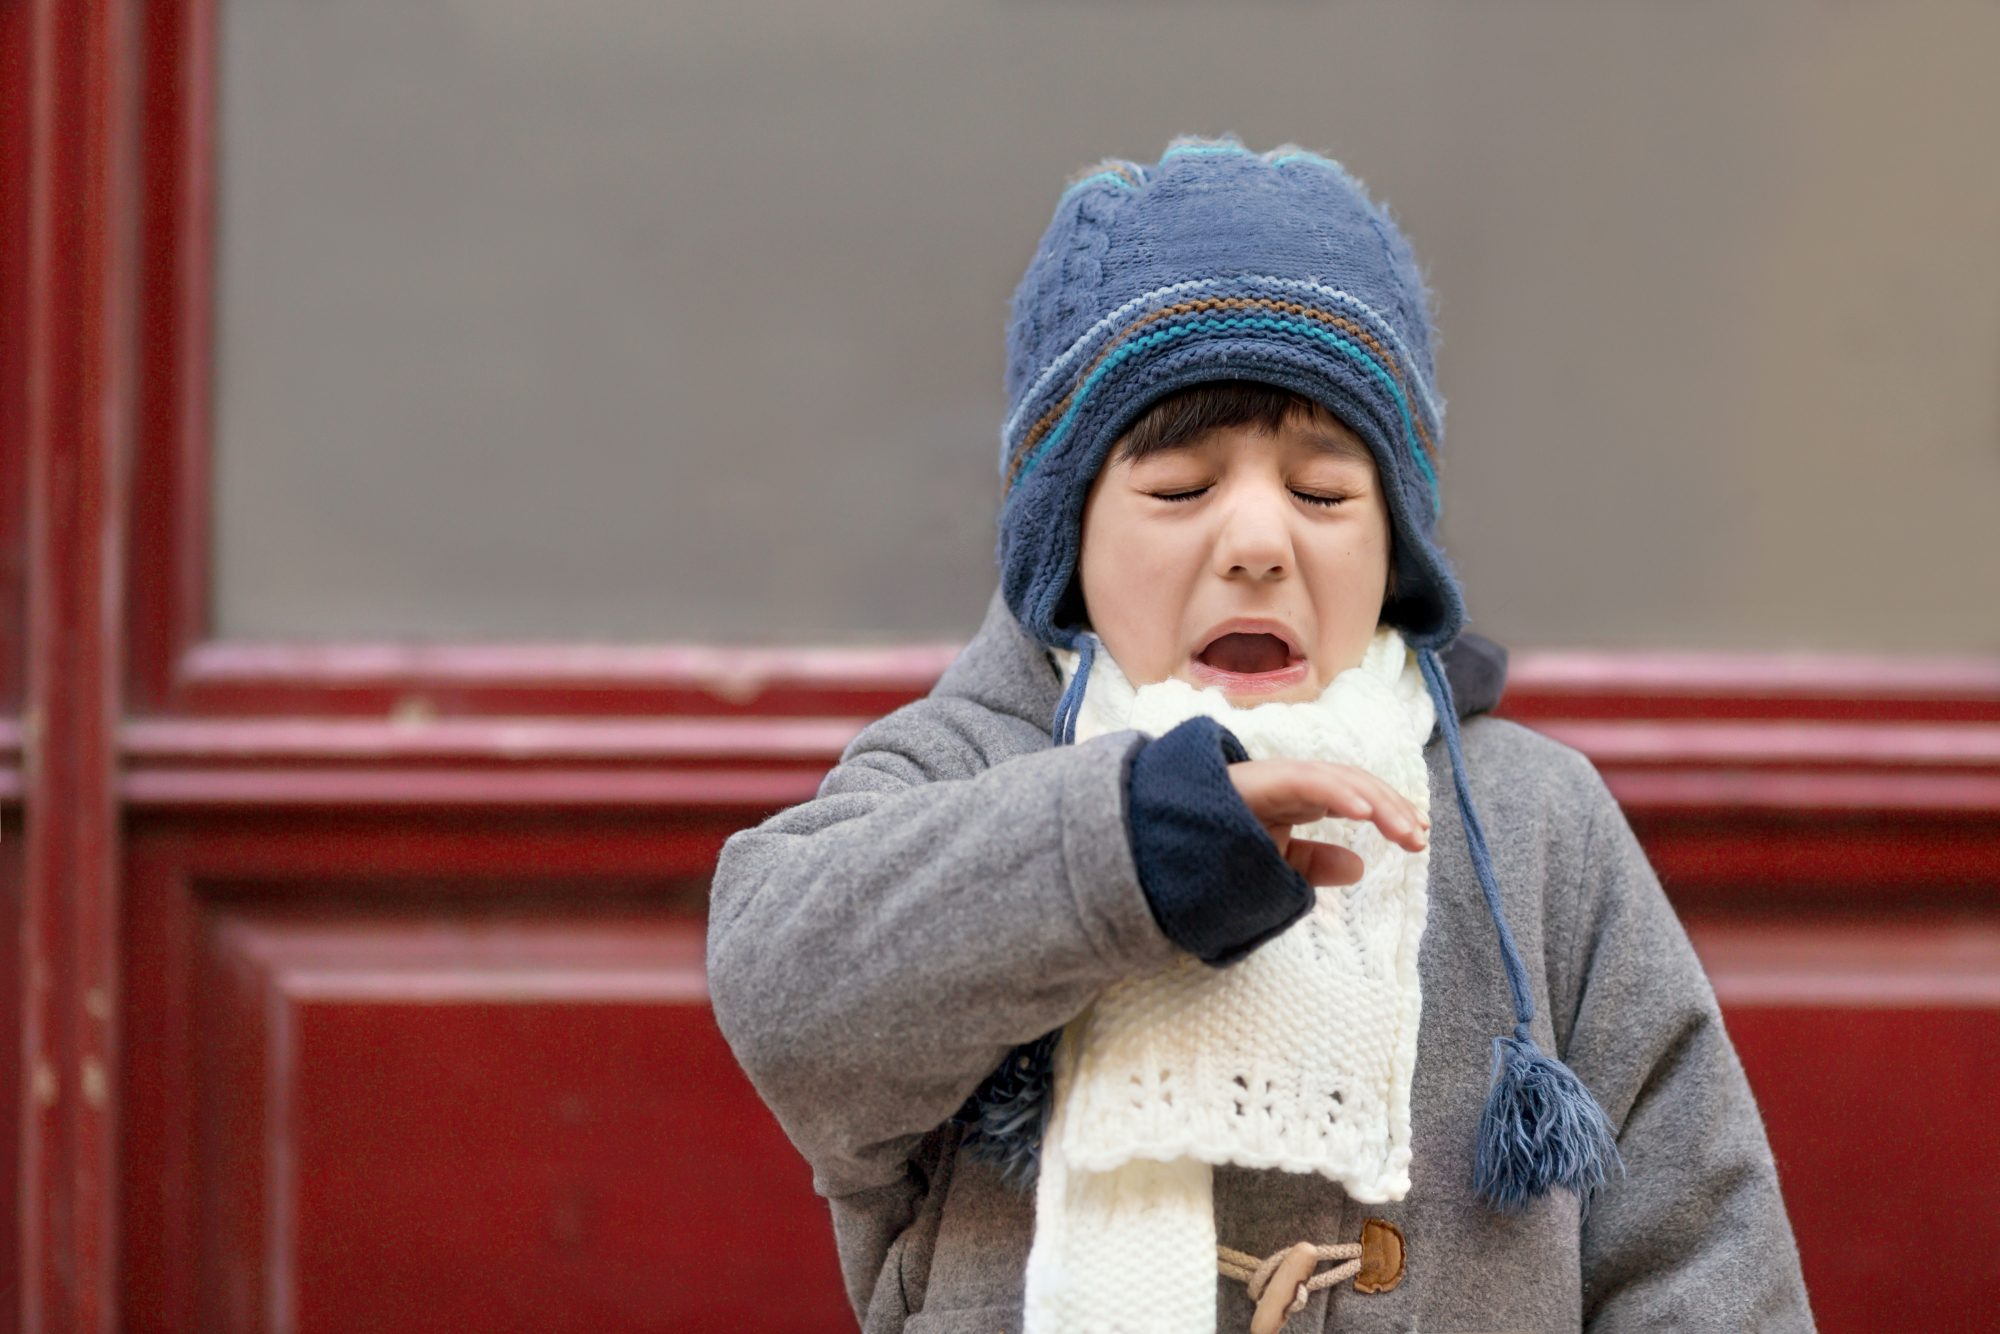 Boy Sneezing Outside in Winter Clothes